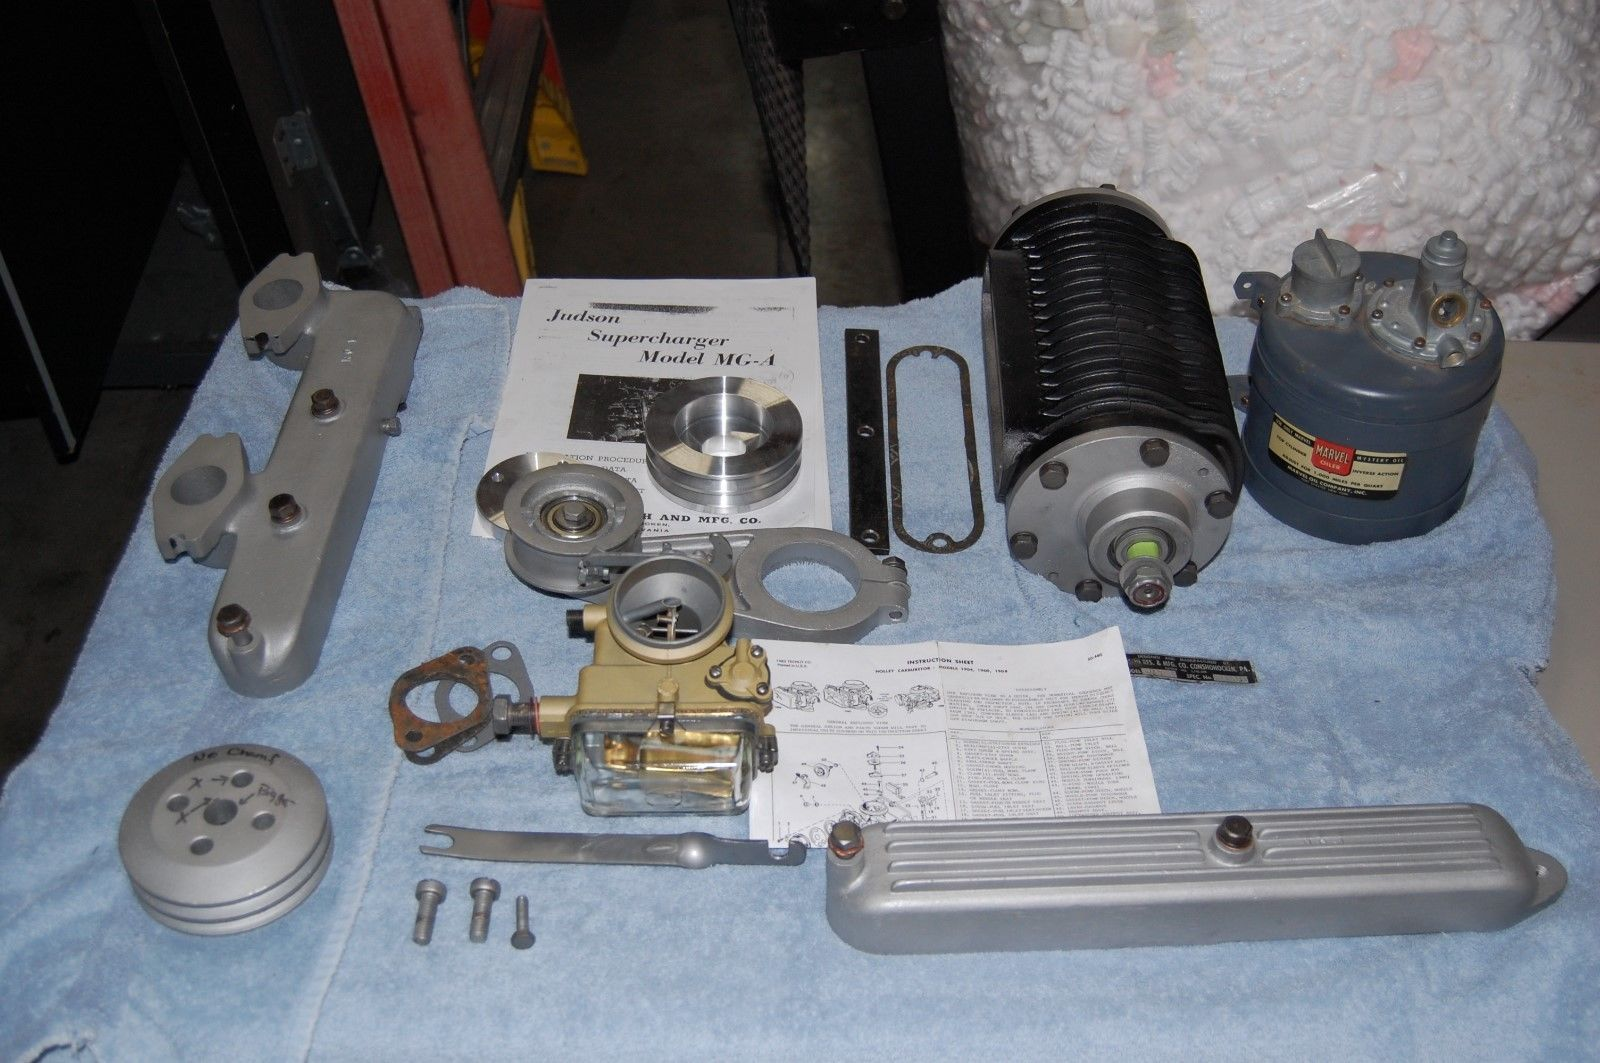 Judson Supercharger for MGA